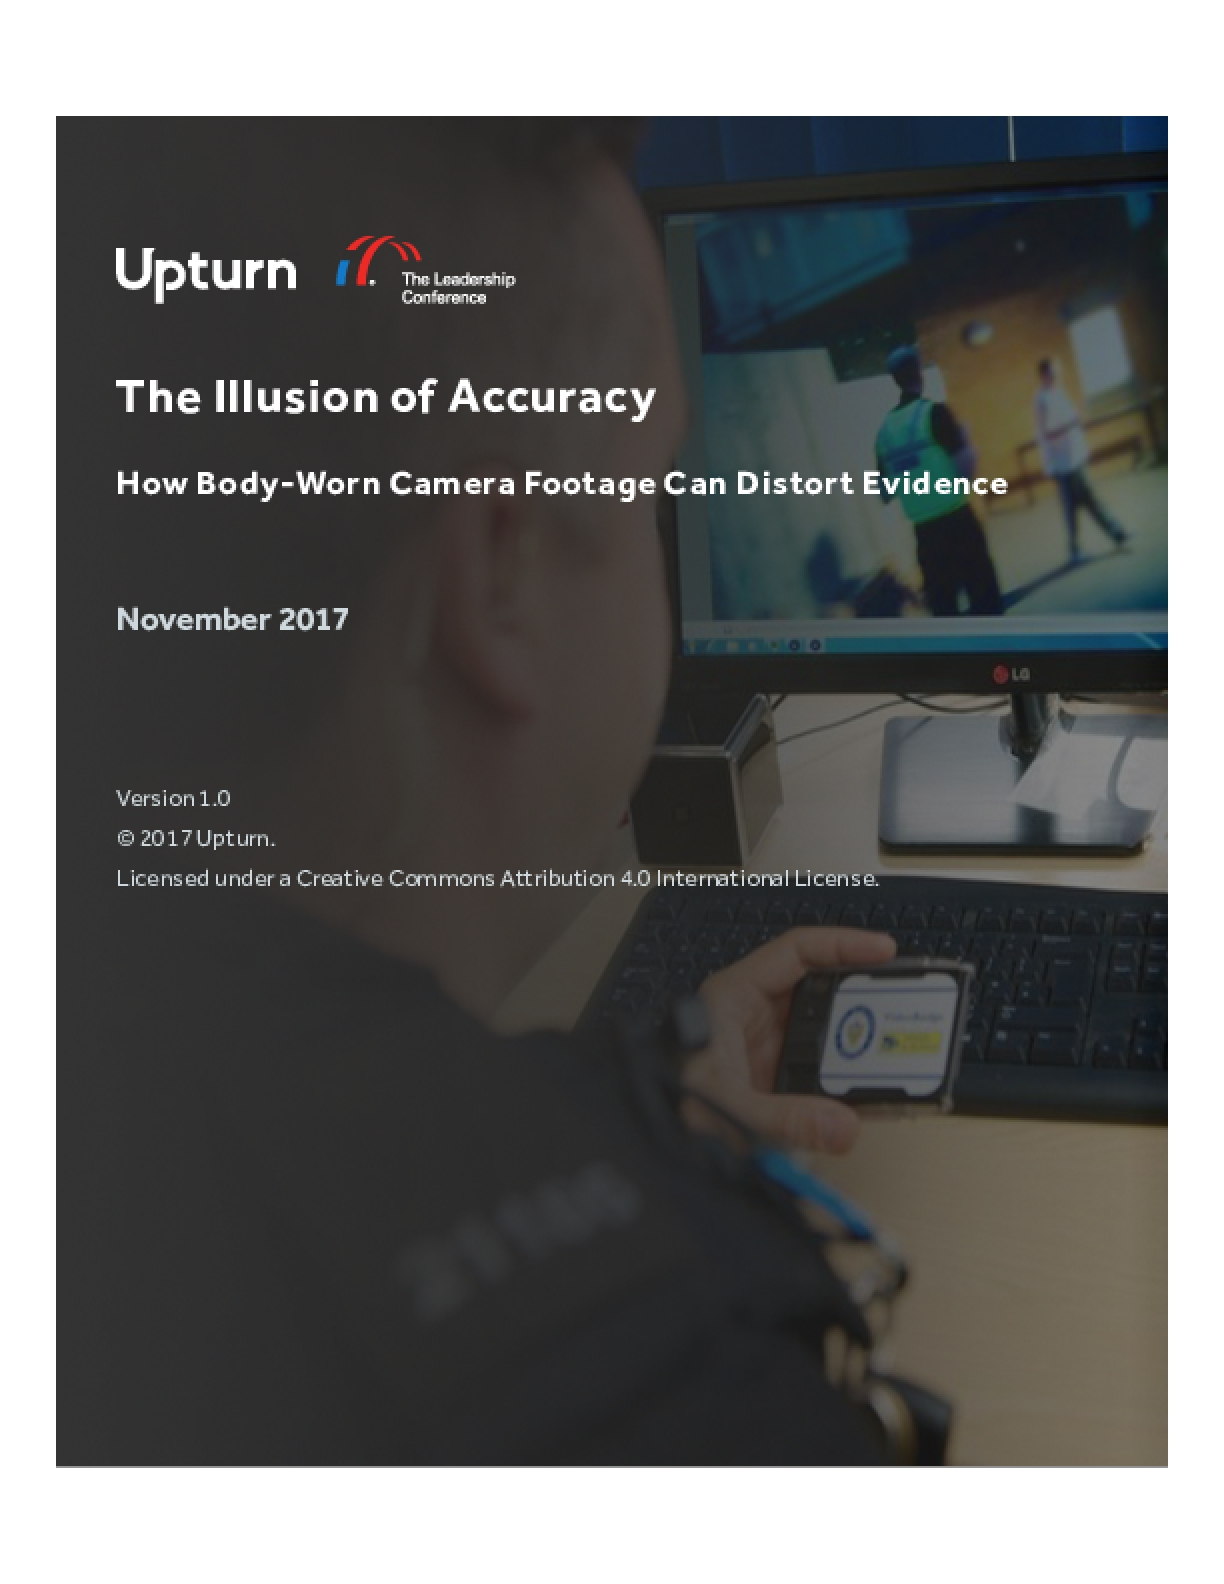 The Illusion of Accuracy How Body-Worn Camera Footage Can Distort Evidence